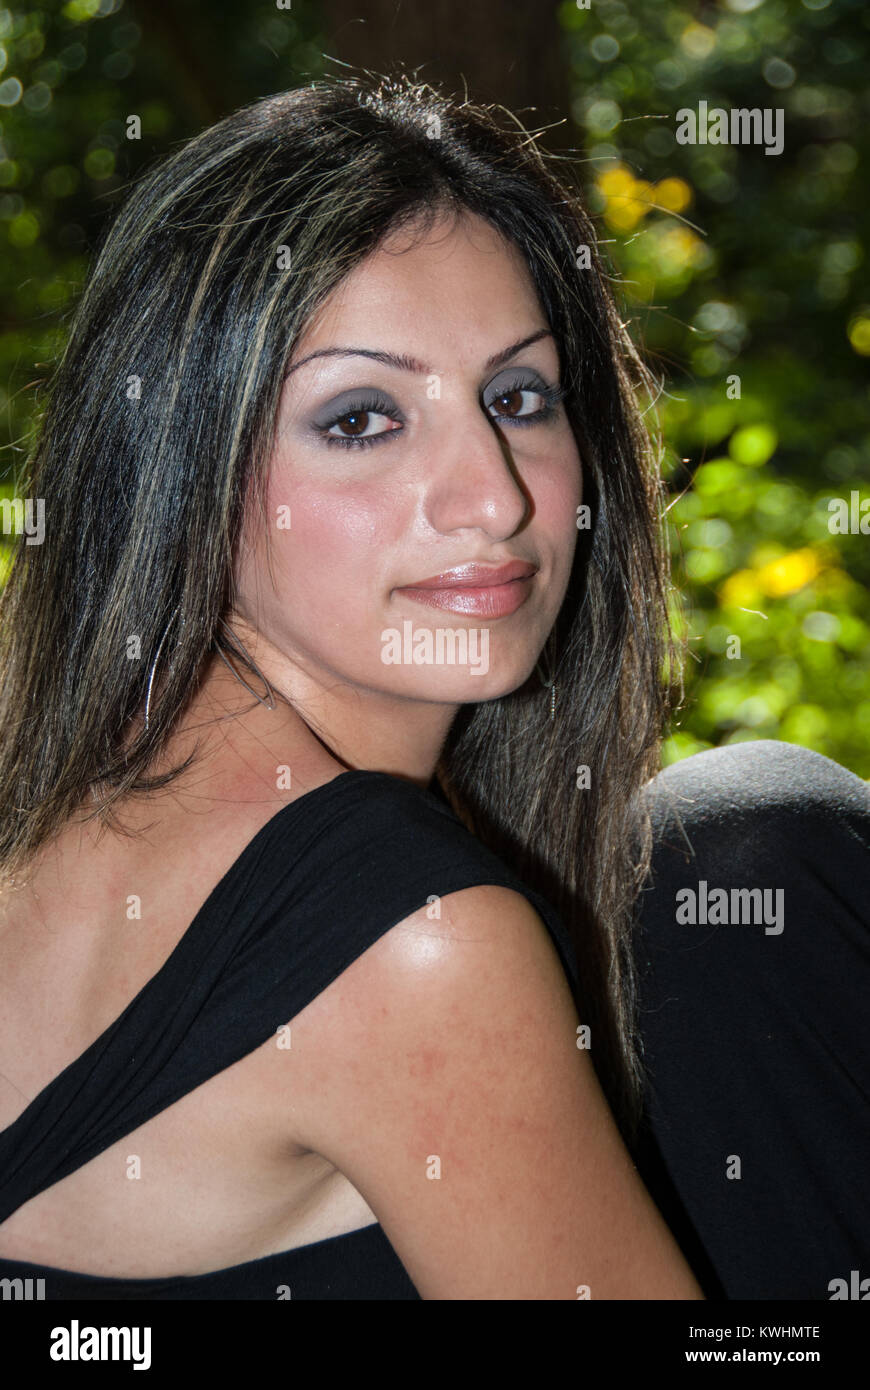 Sue Casey nudes (44 foto and video), Topless, Hot, Twitter, bra 2006